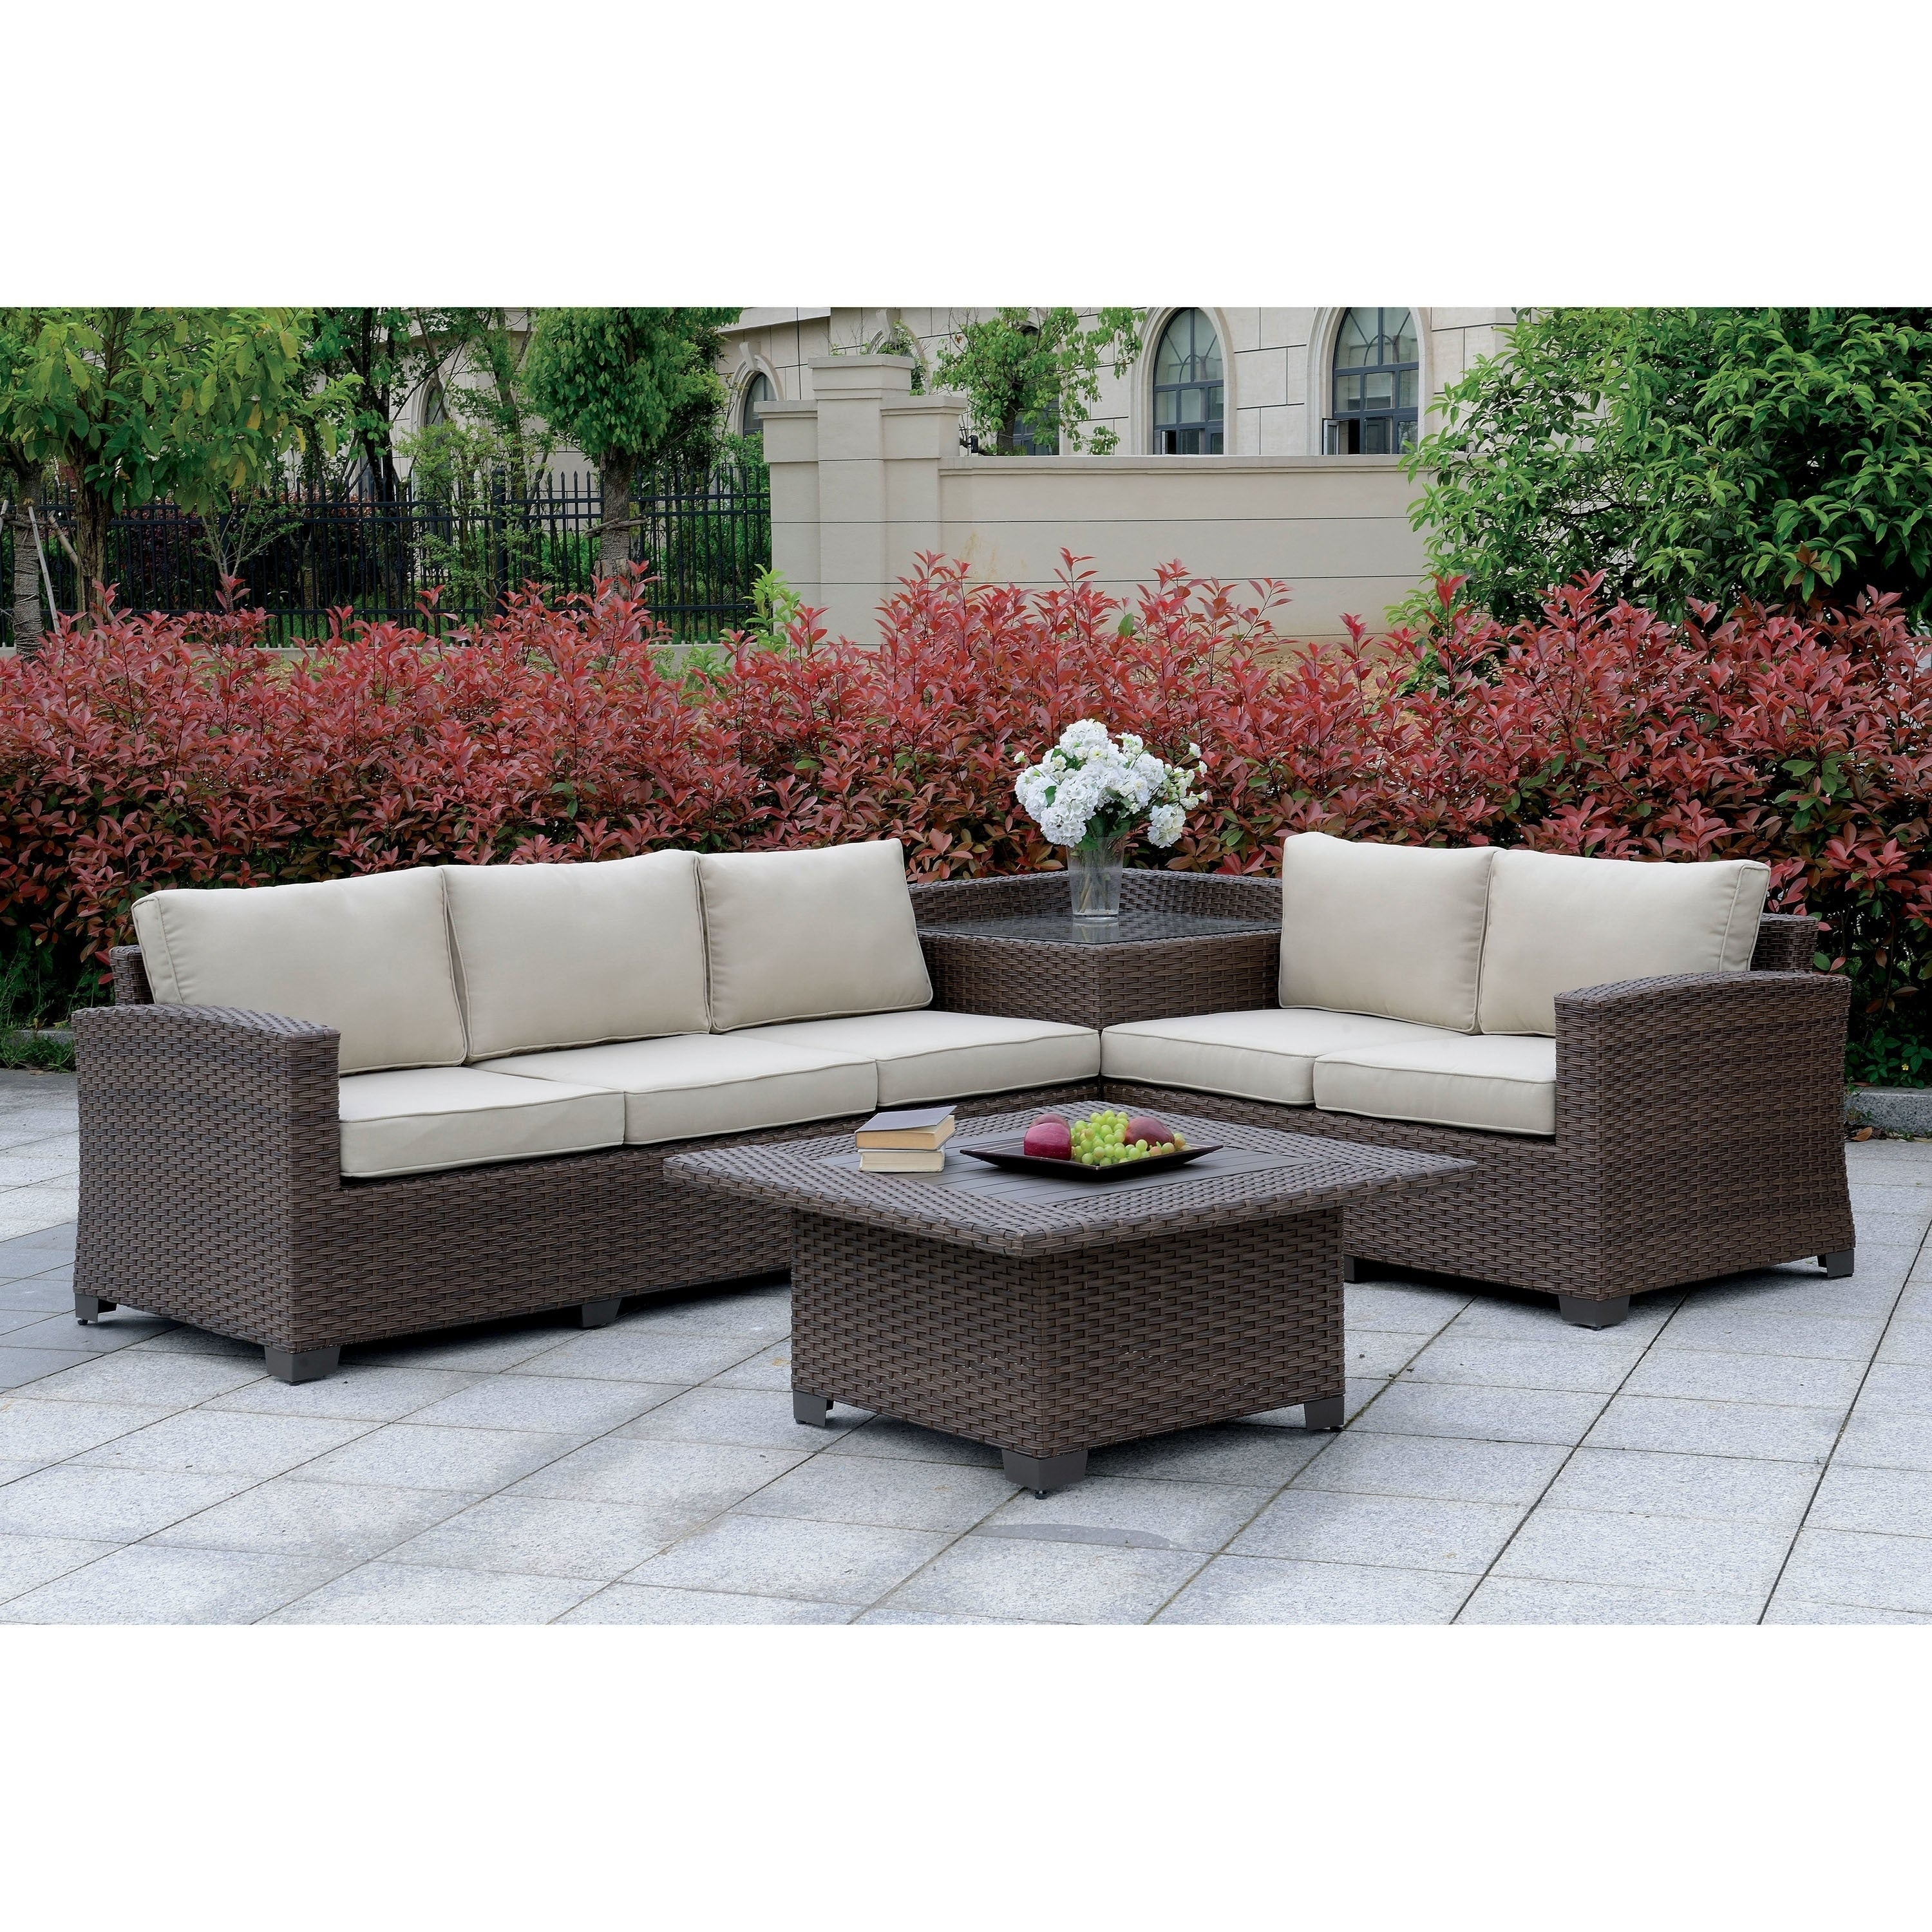 Outdoor Patio Sectional With Corner